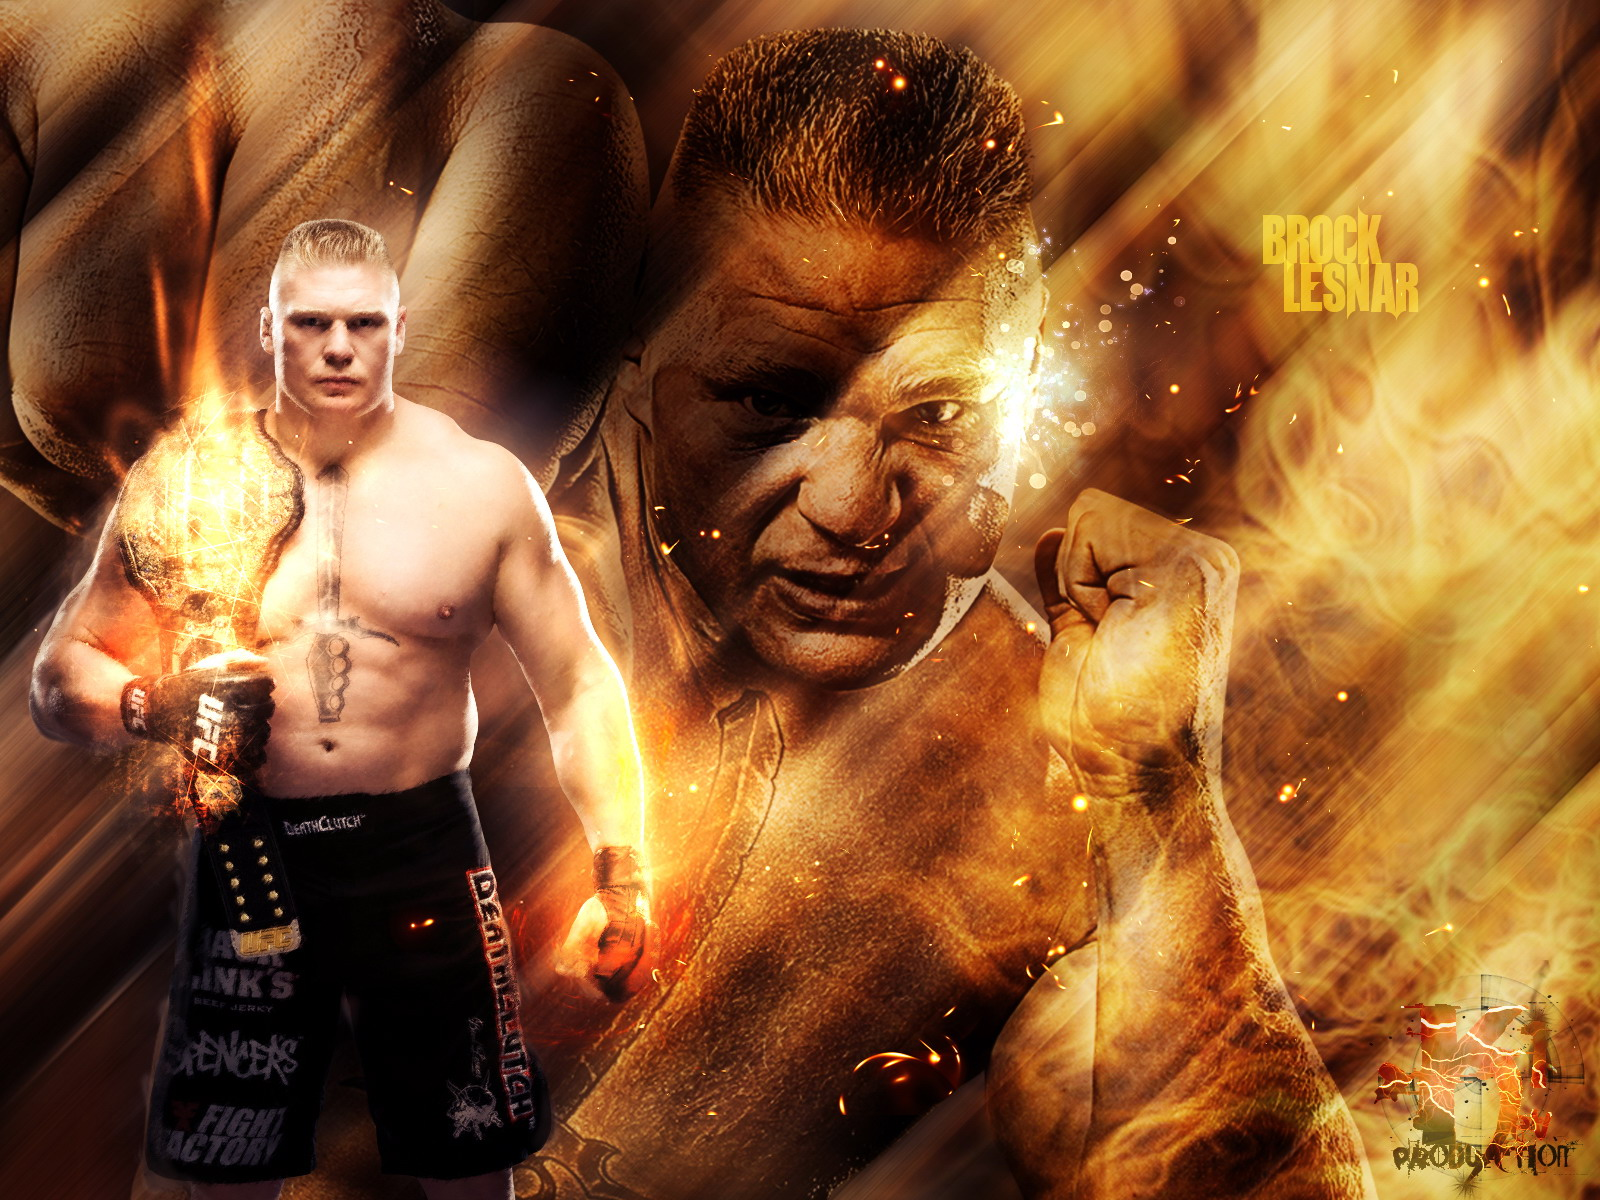 lesnar wallpaper brock lesnar wallpaper brock lesnar wallpaper brock 1600x1200